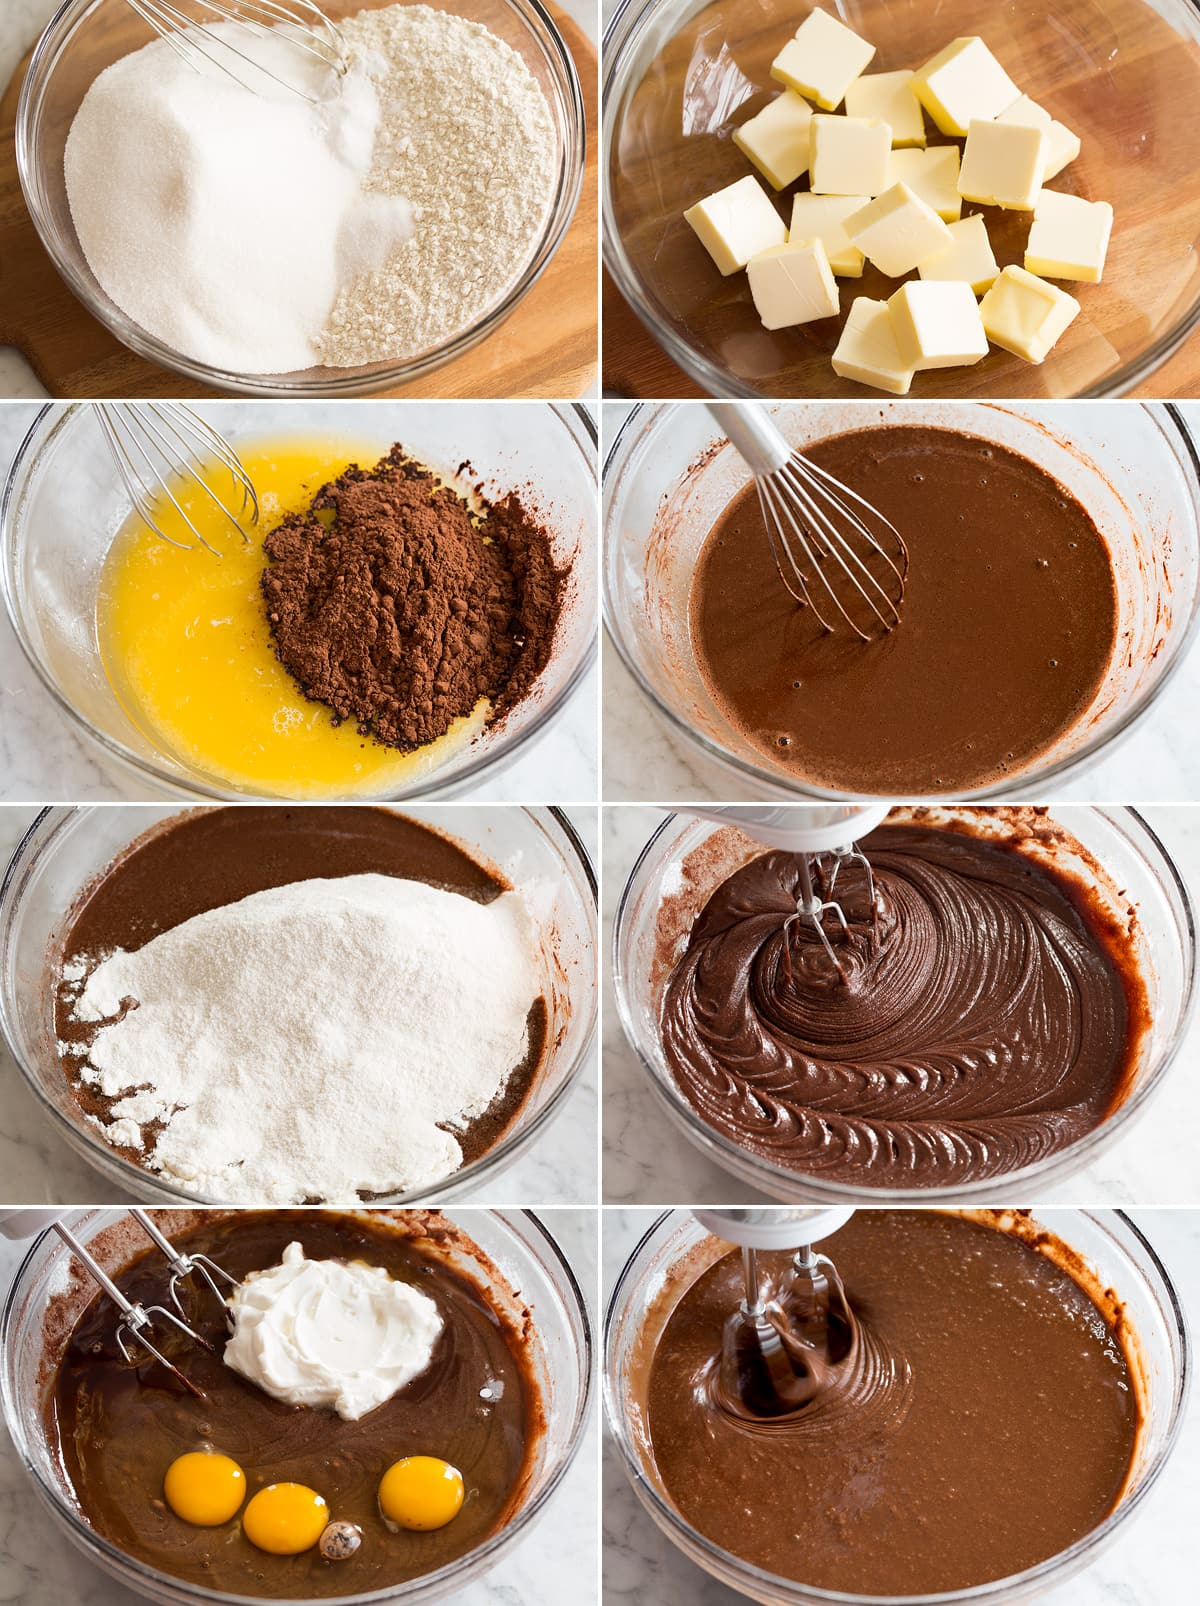 Collage of eight photos showing steps to make bundt cake batter.